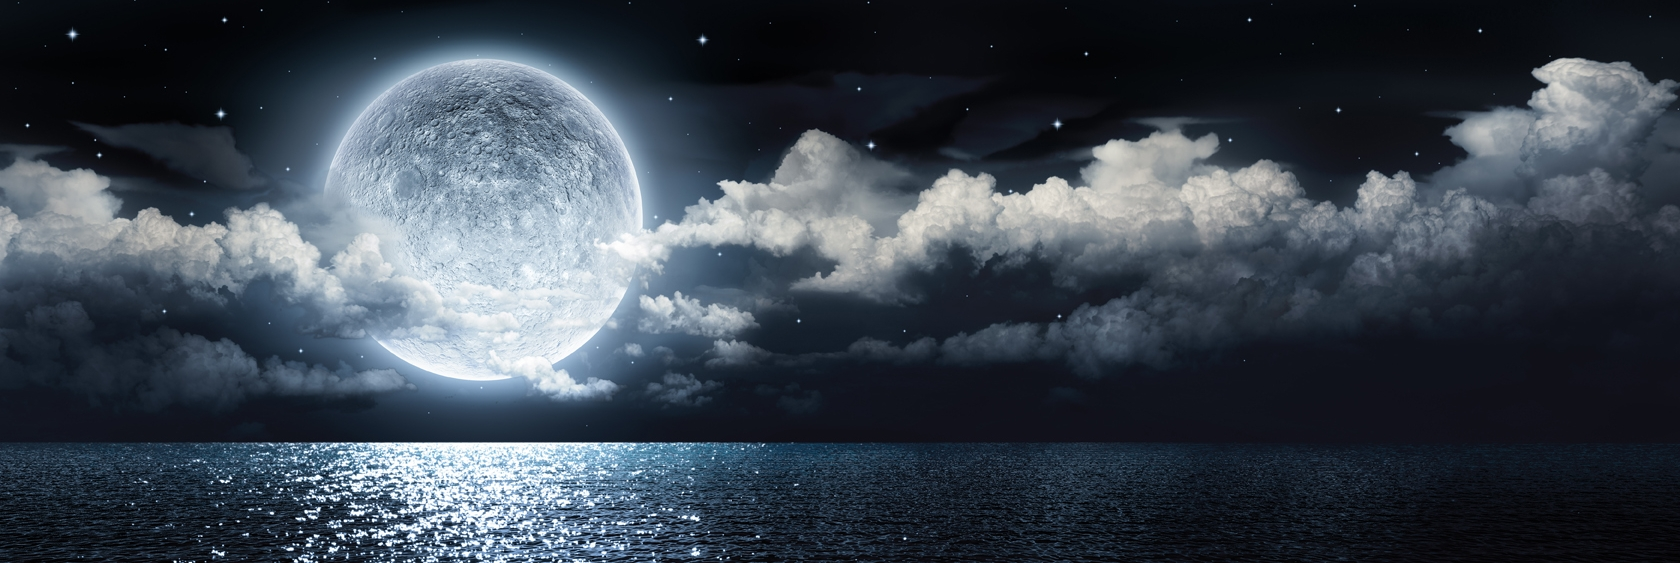 Watery Full Moon